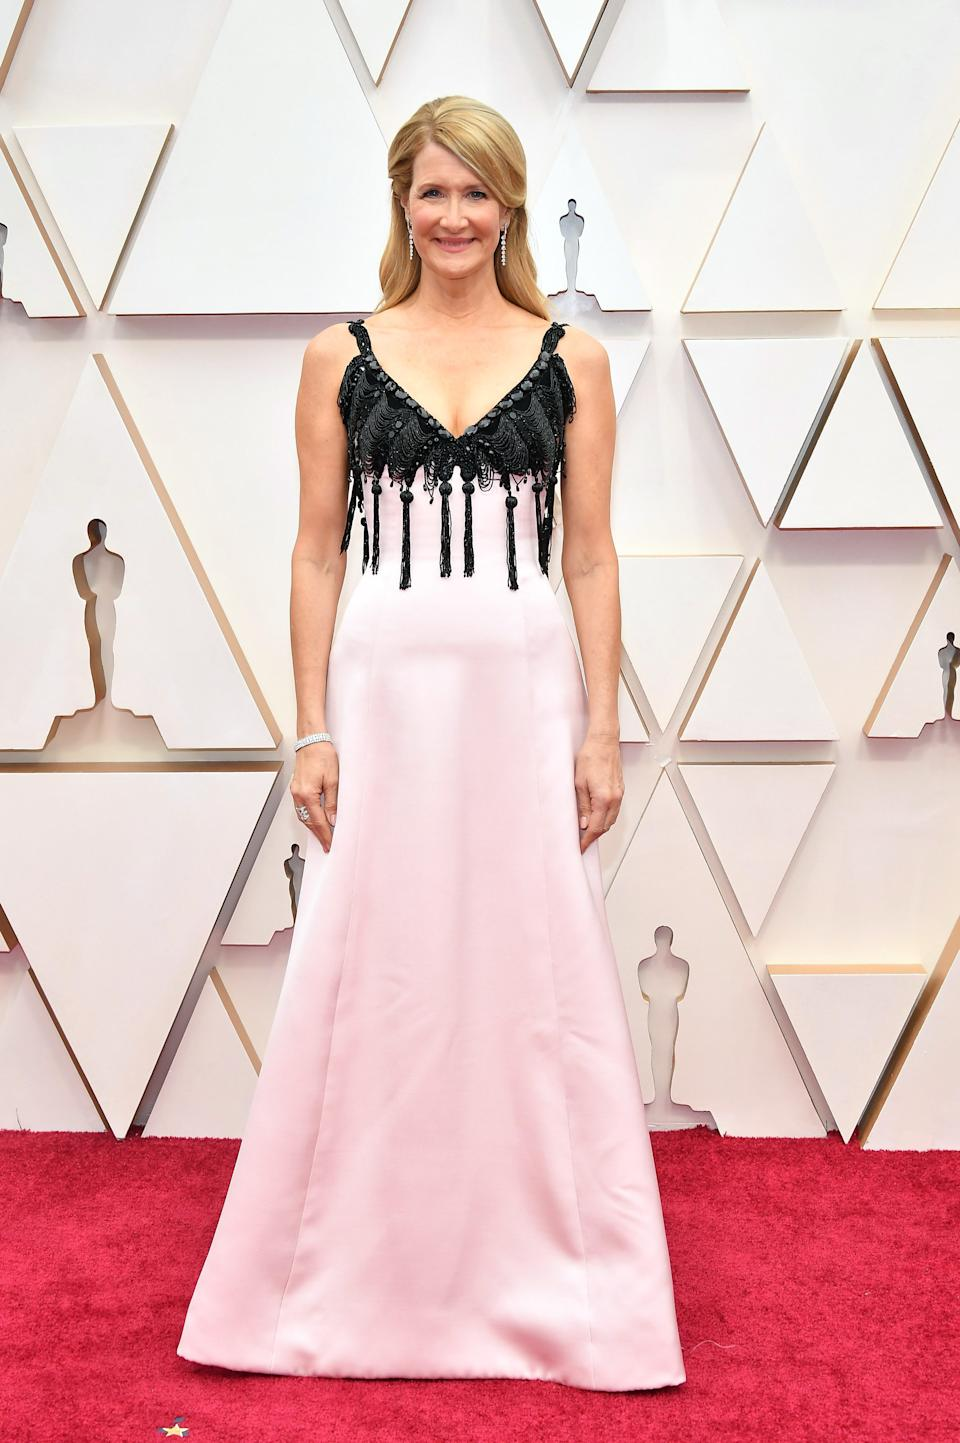 """The Oscar nominee arrived on the red carpet in a pink and black Armani gown. Dern is favoured to take home the award for Best Supporting Actress for her role as a cutthroat attorney in """"Marriage Story."""""""